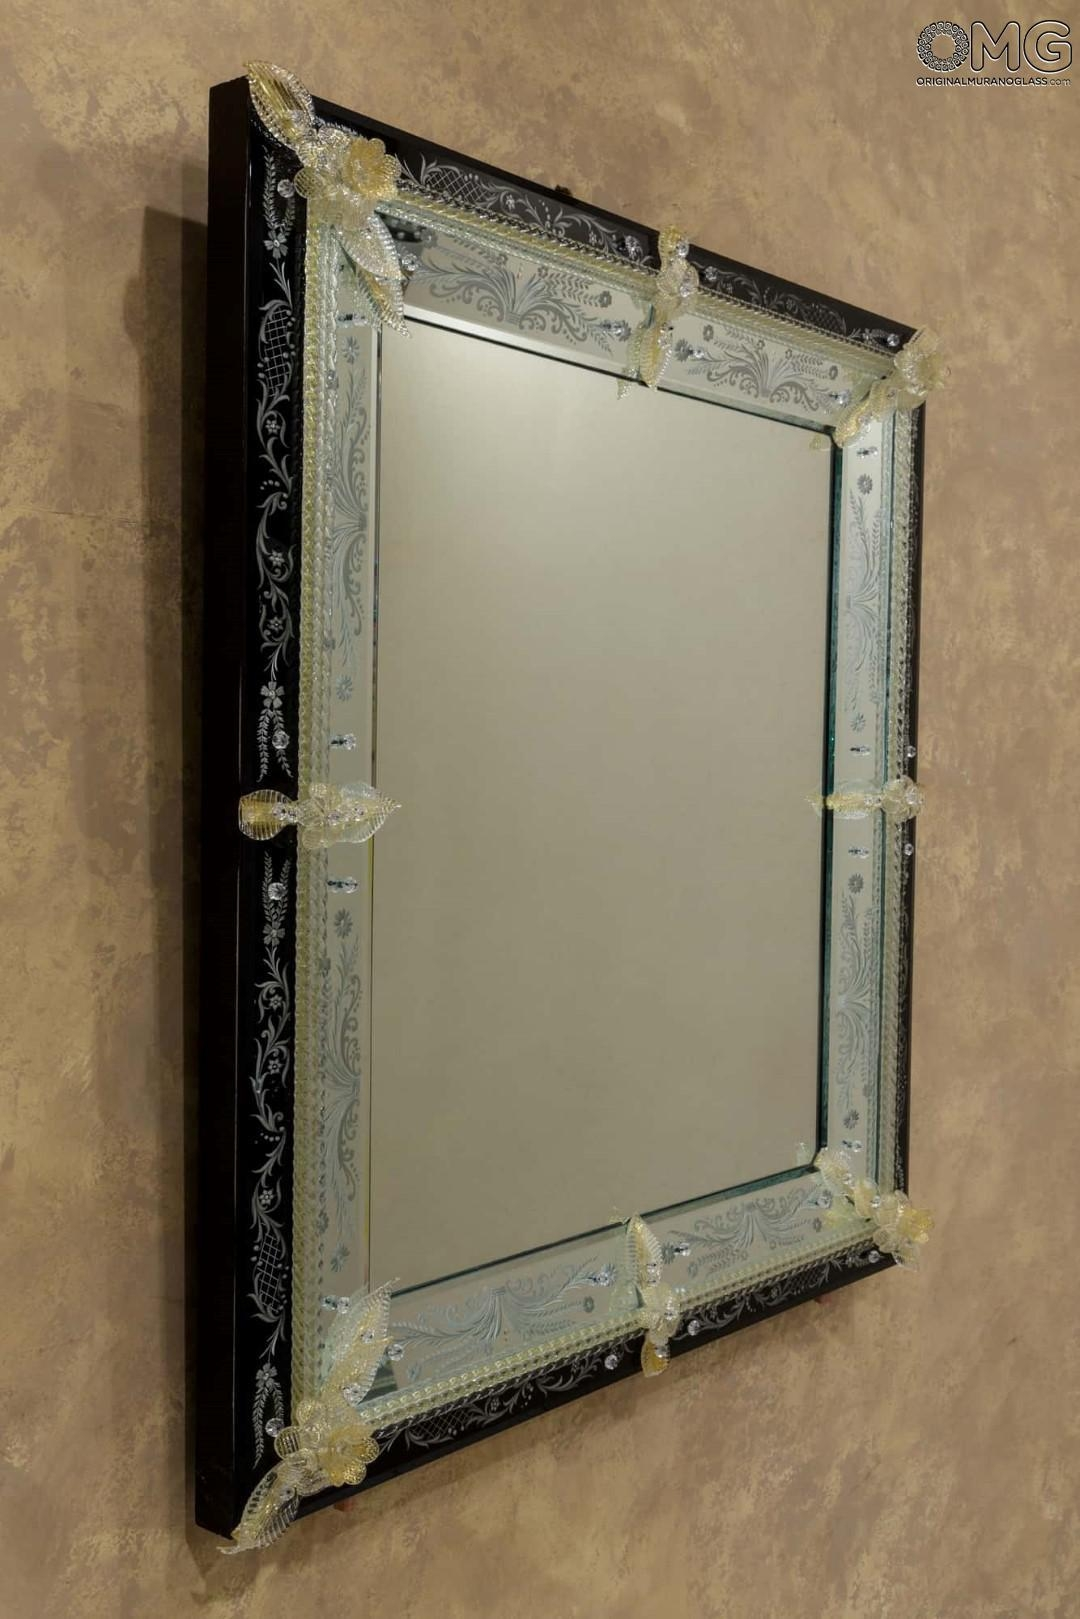 Sale, Offers And Discounts : Cesare – Venetian Mirror – Luxury Pertaining To Black Venetian Mirror (Image 13 of 20)